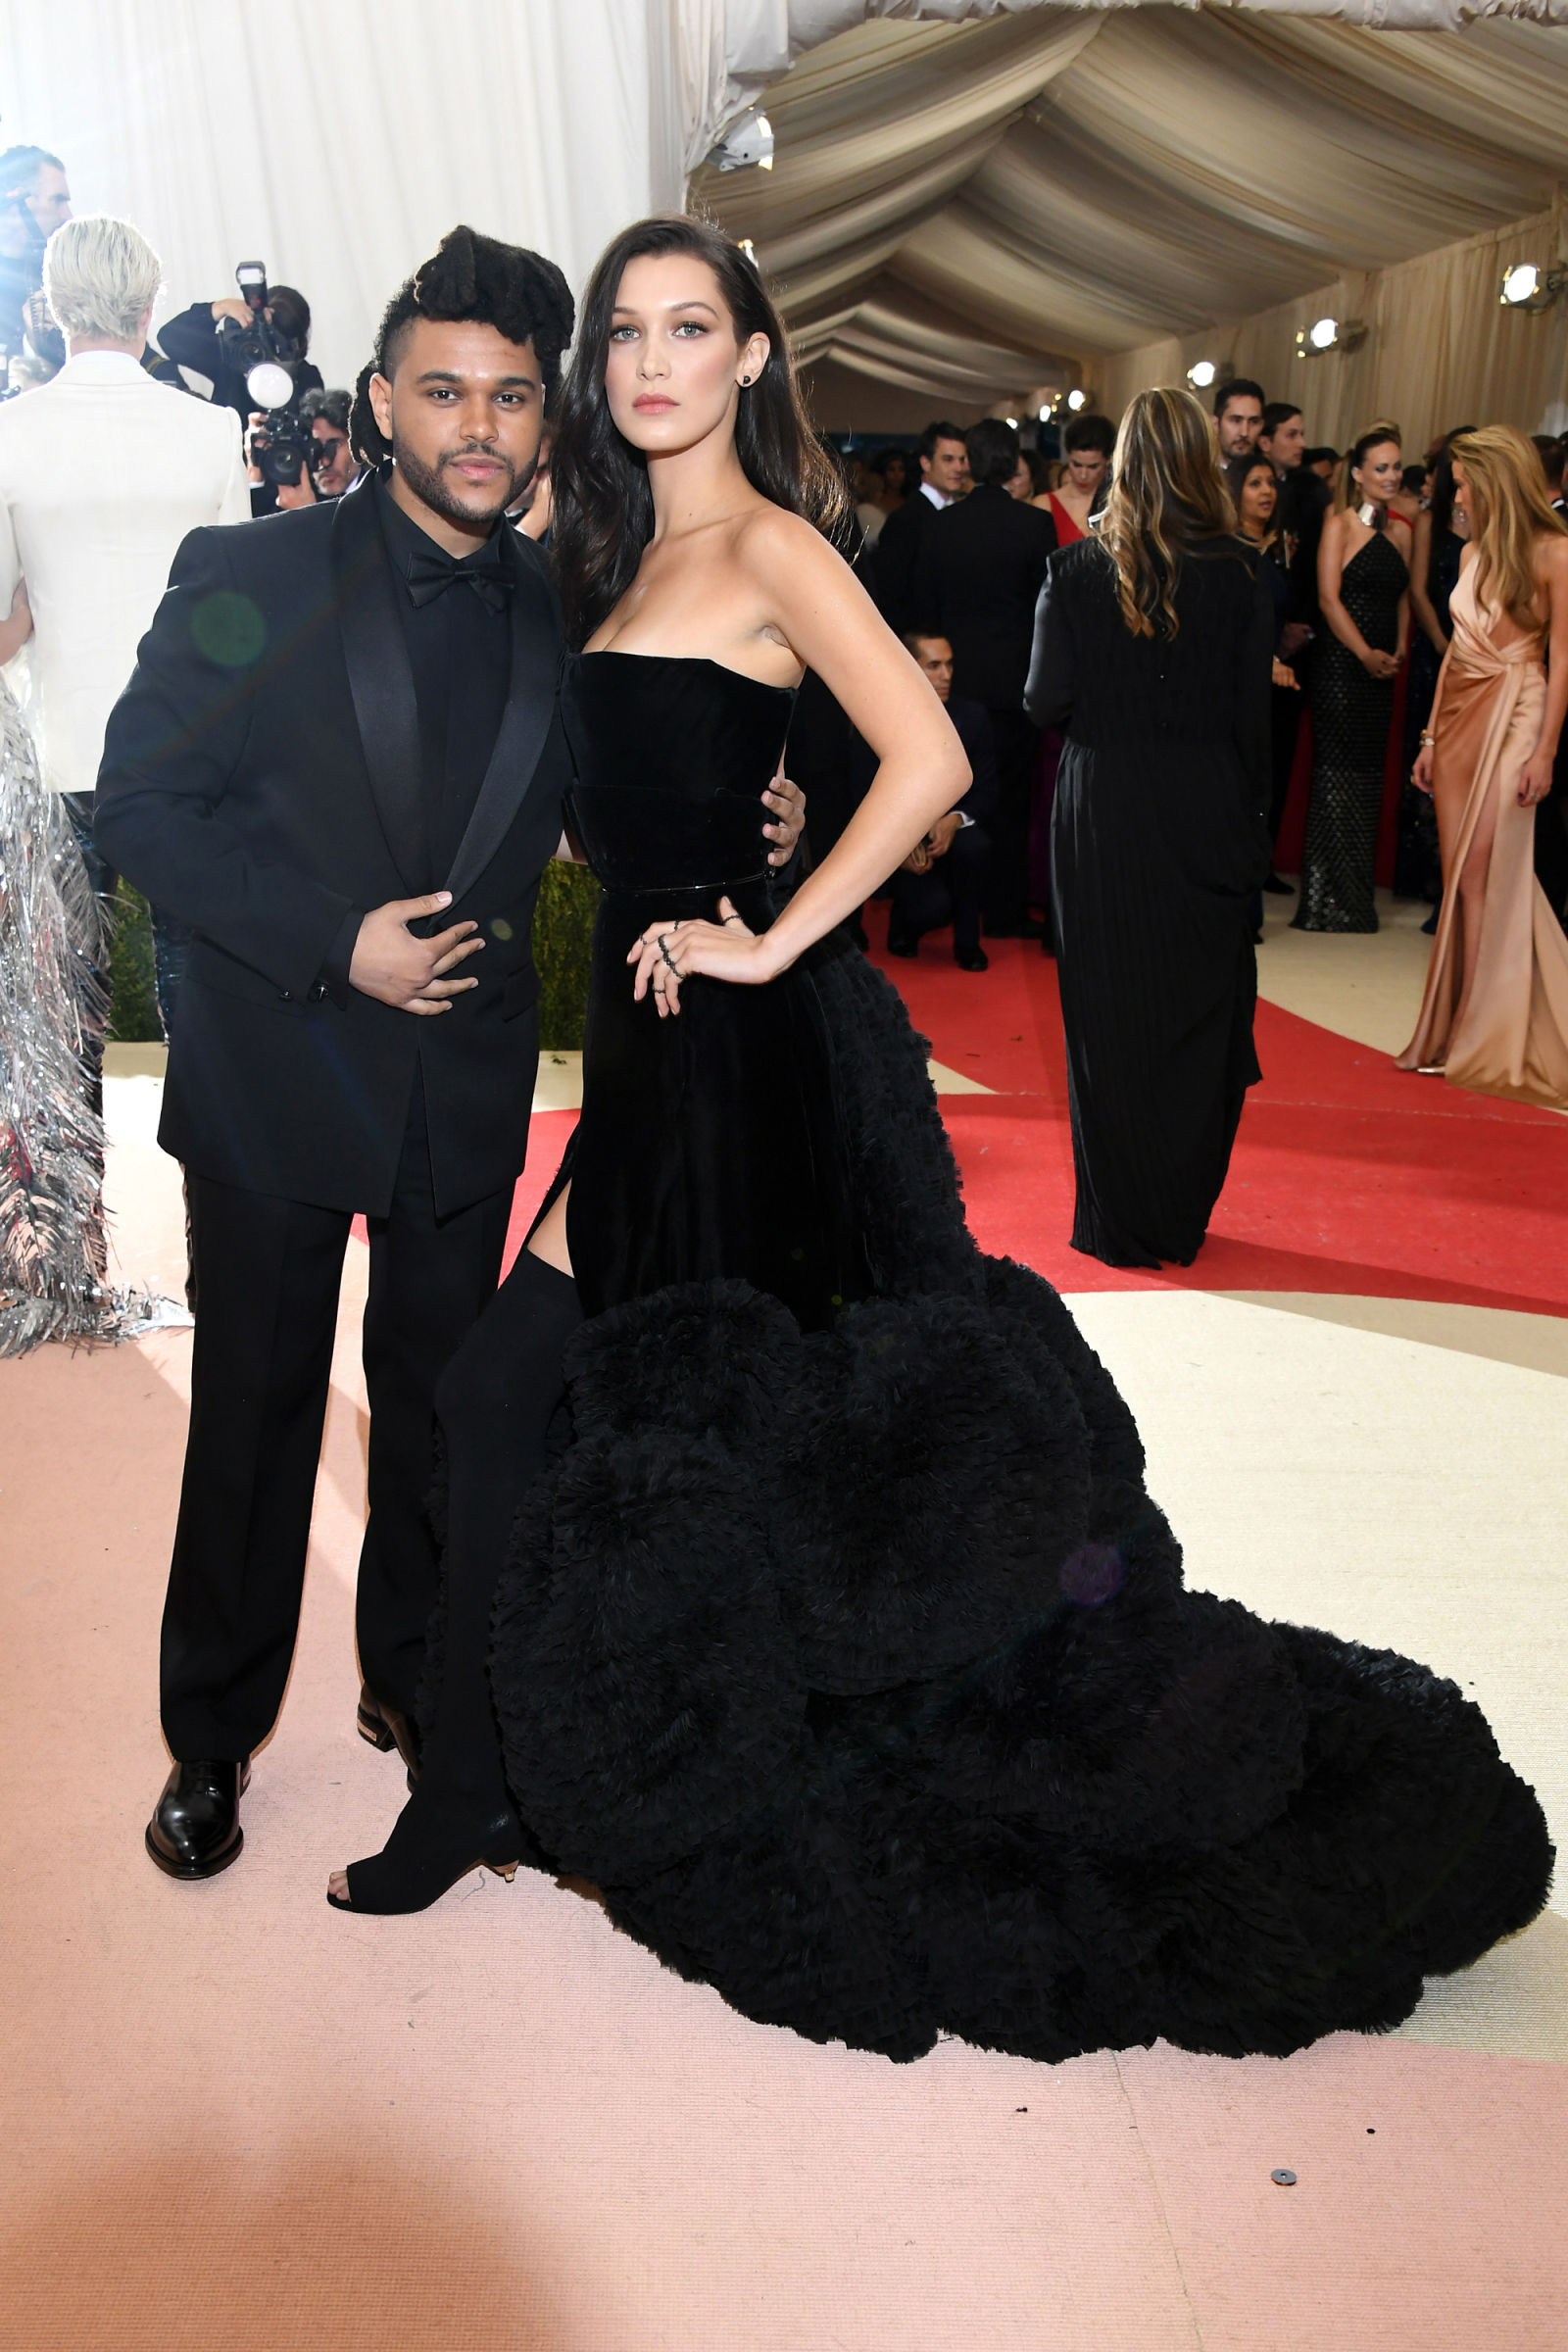 Bella Hadid and The Weeknd hairstyles at Met Gala 2016